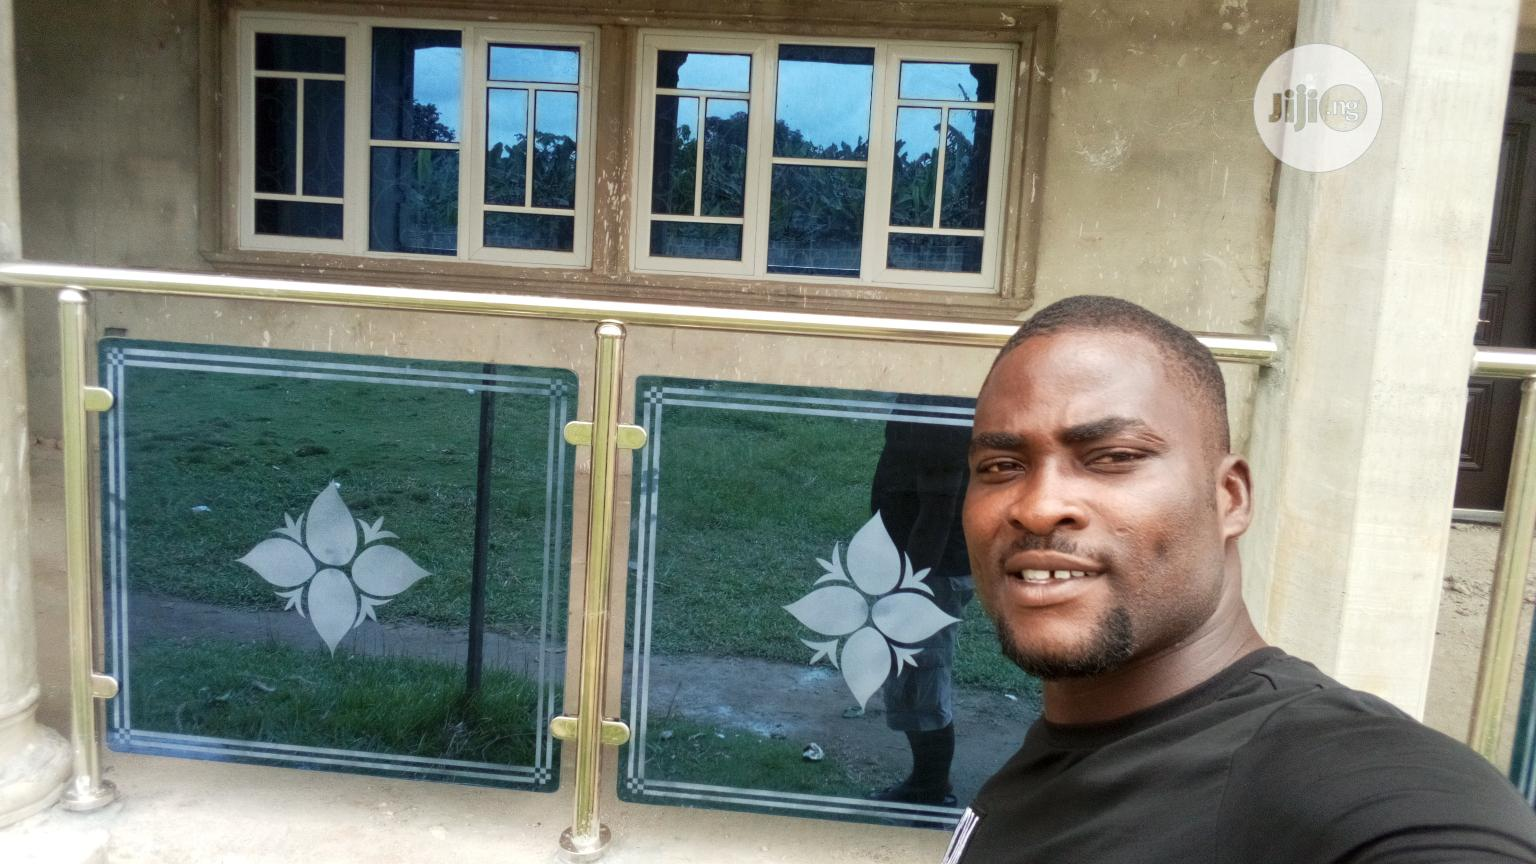 Stainless Steel Handrails | Windows for sale in Port-Harcourt, Rivers State, Nigeria